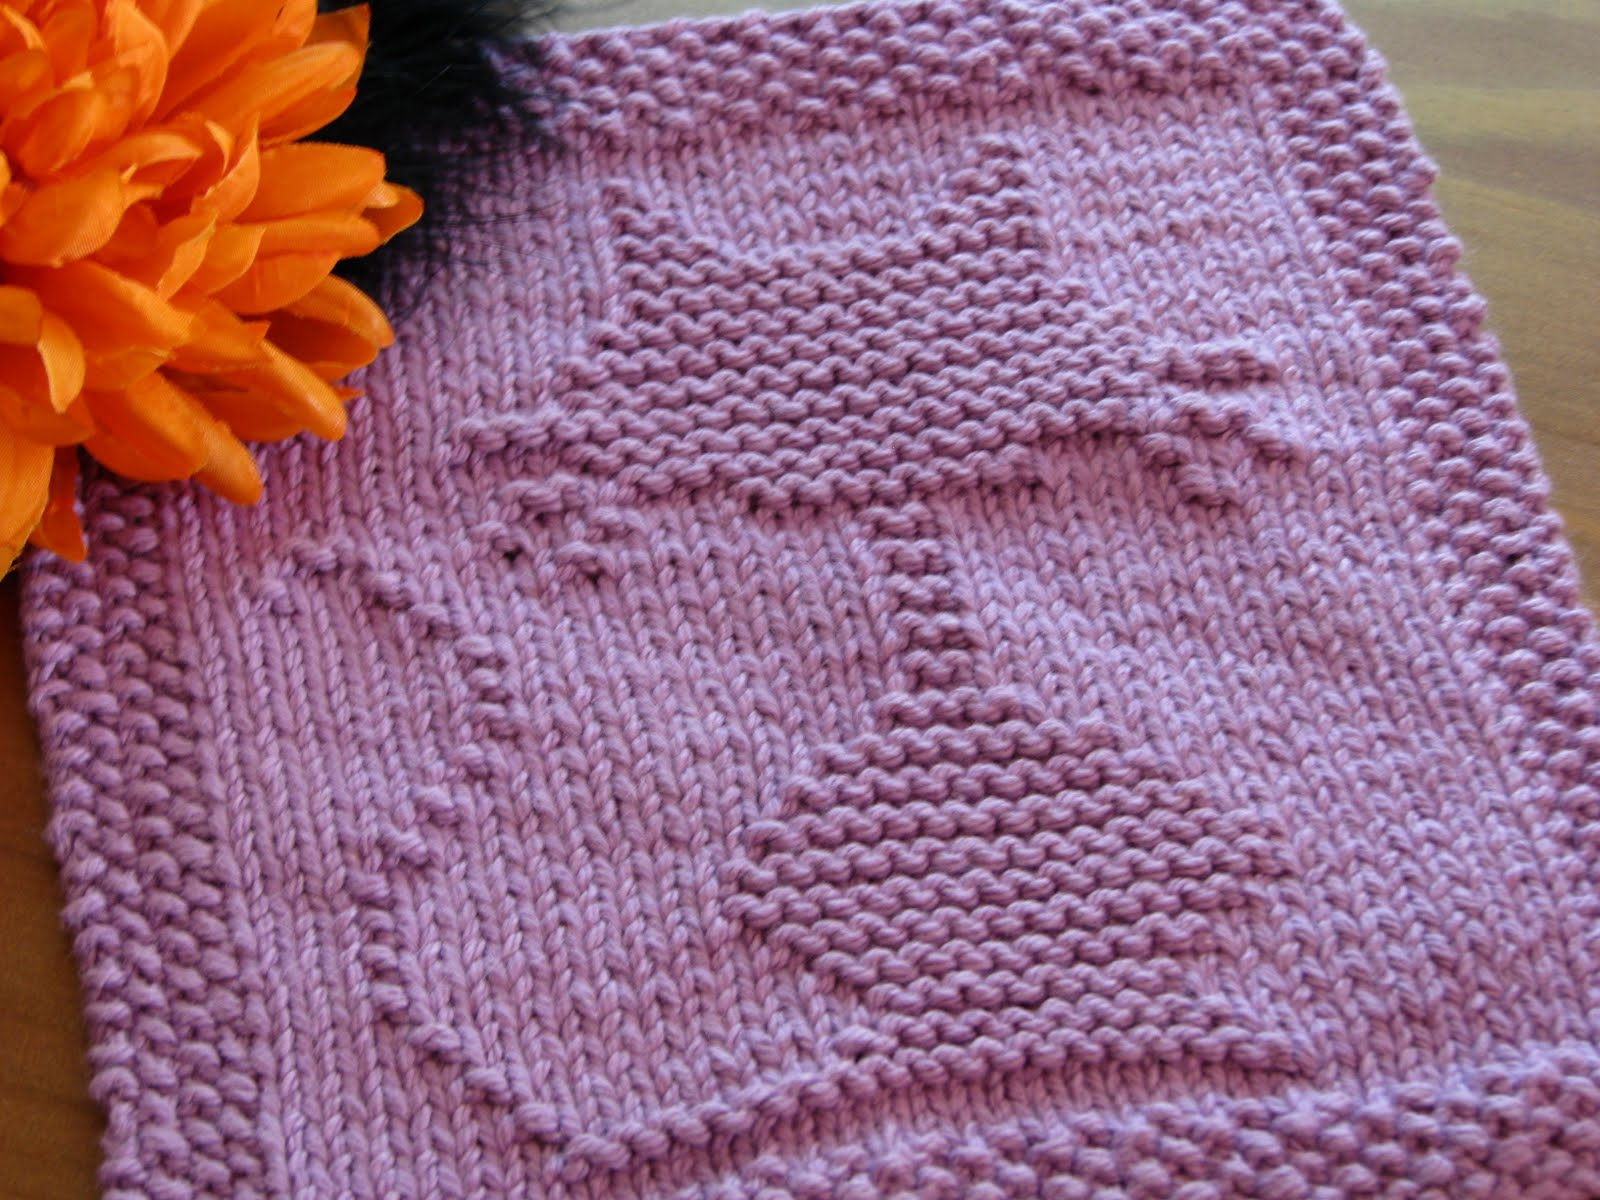 Crafty Knitting Patterns : One Crafty Mama: Halloween Cat Dishcloth